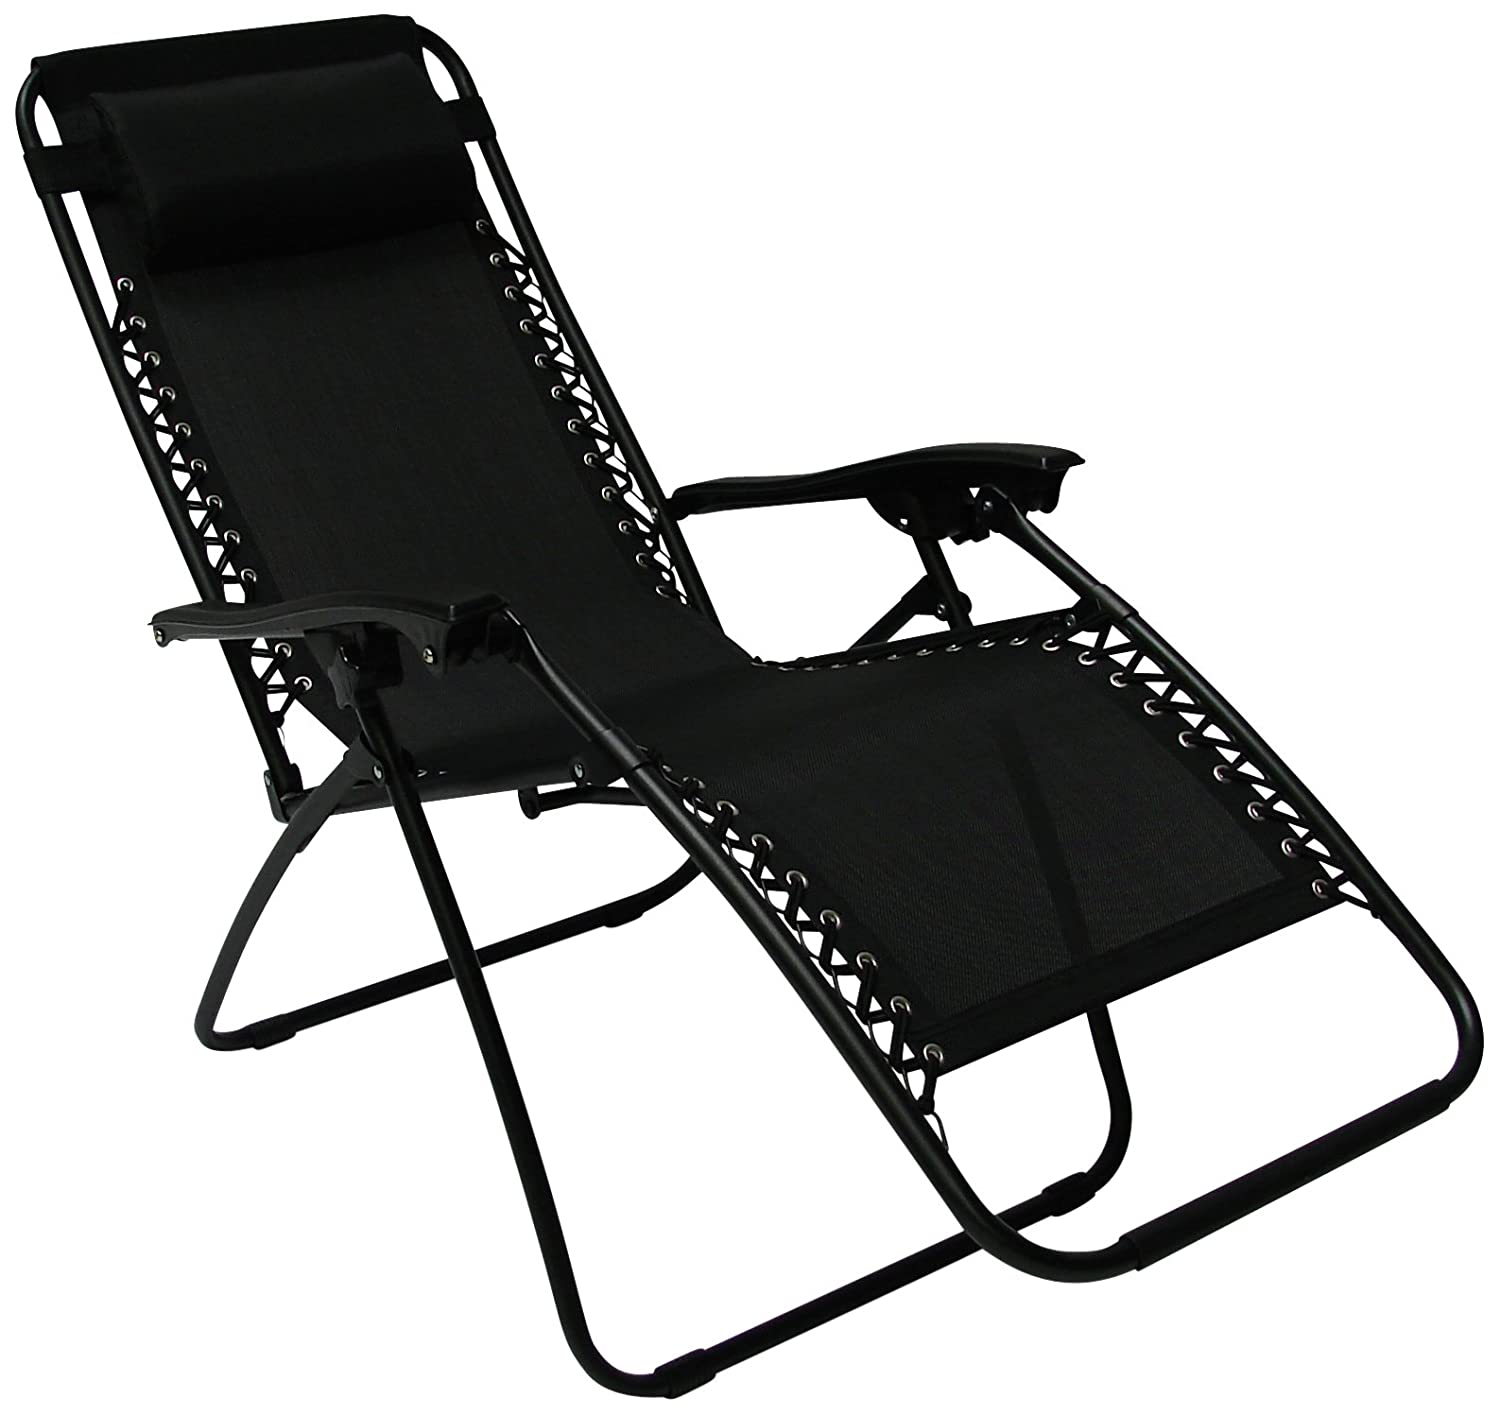 RoyalCraft Zero Gravity Relaxer Black Amazon Garden & Outdoors